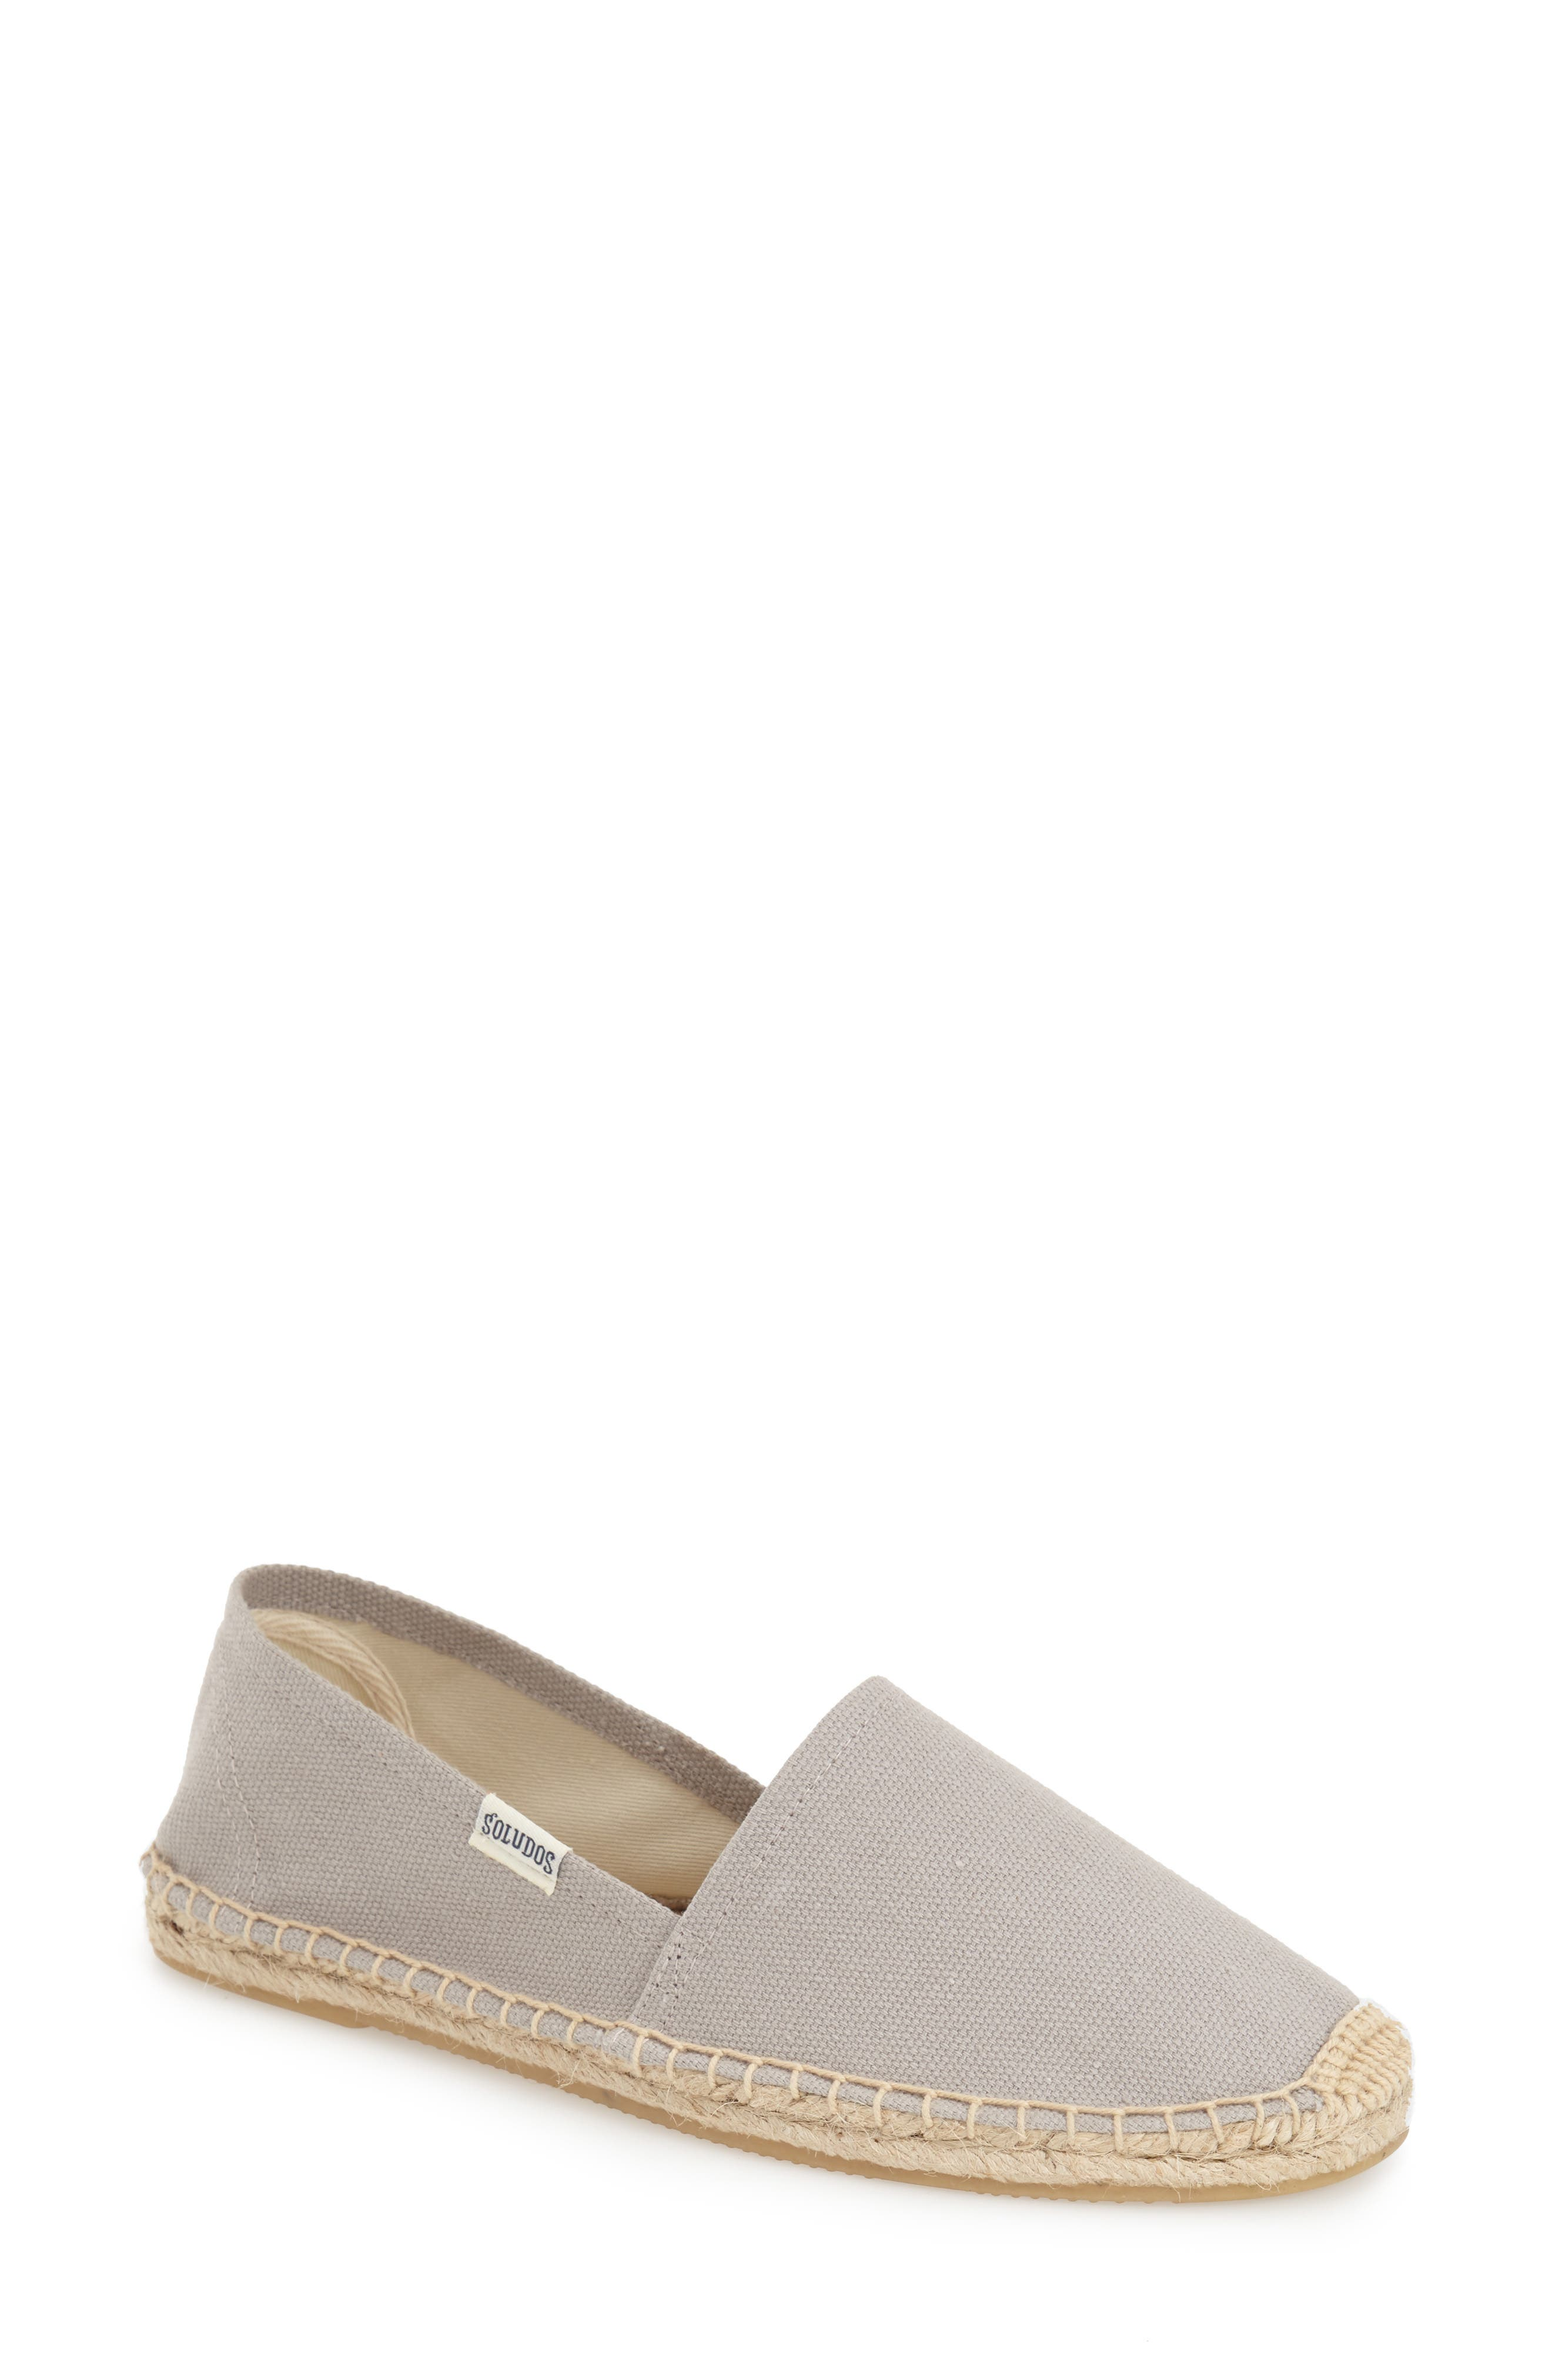 SOLUDOS, 'Original Dali' Espadrille Slip-On, Alternate thumbnail 5, color, GREY CANVAS